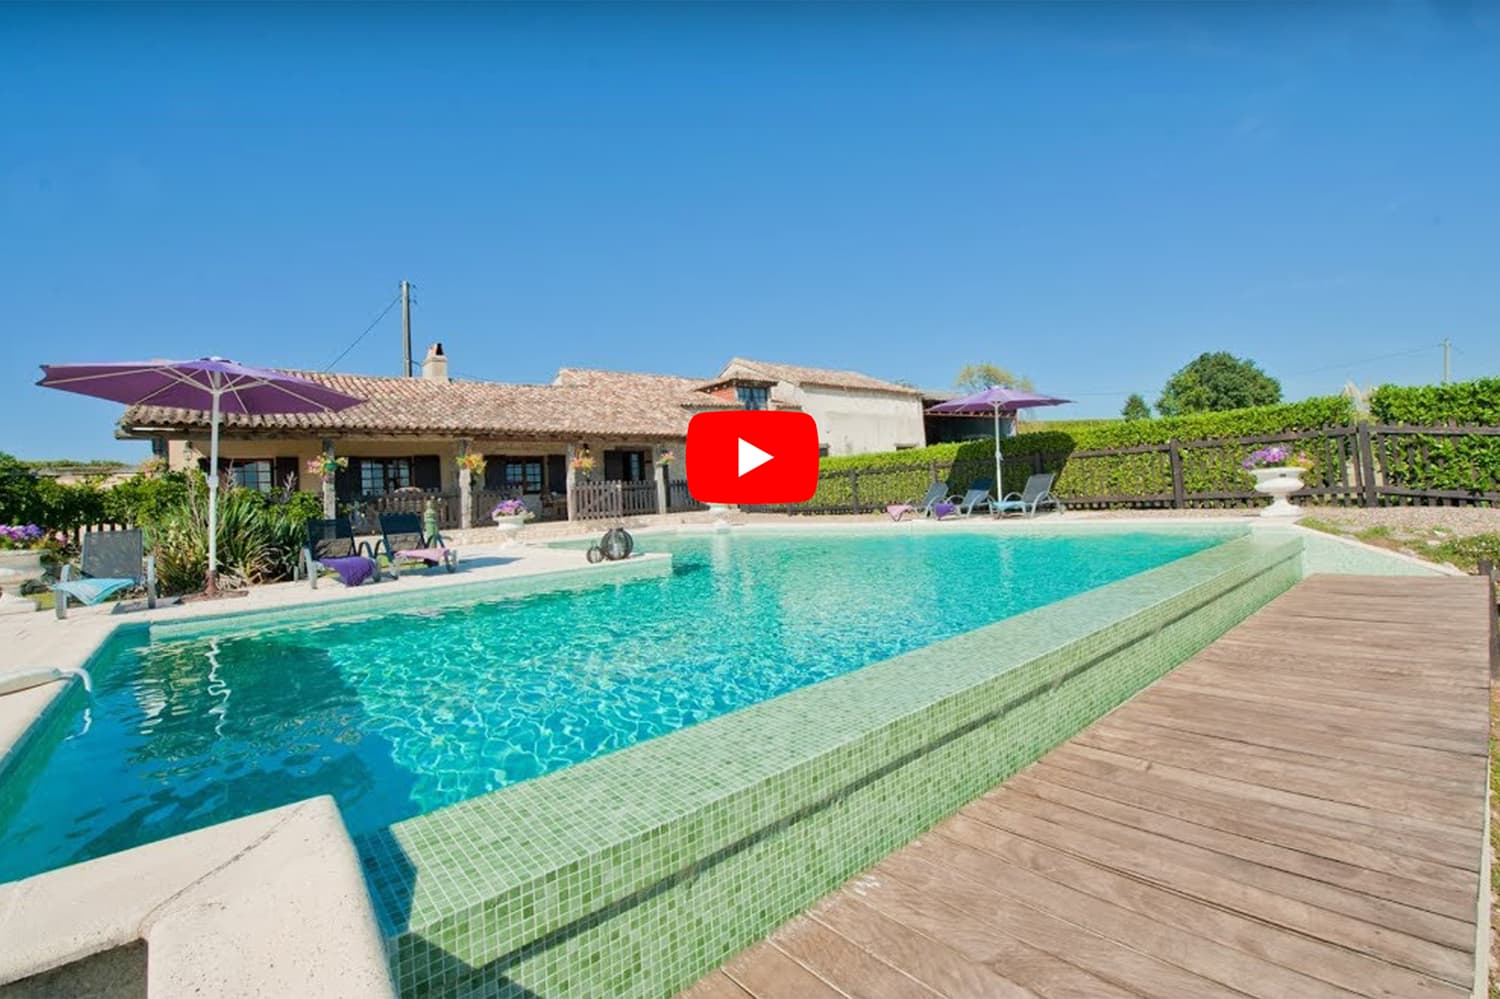 Holiday accommodation video in Saussignac